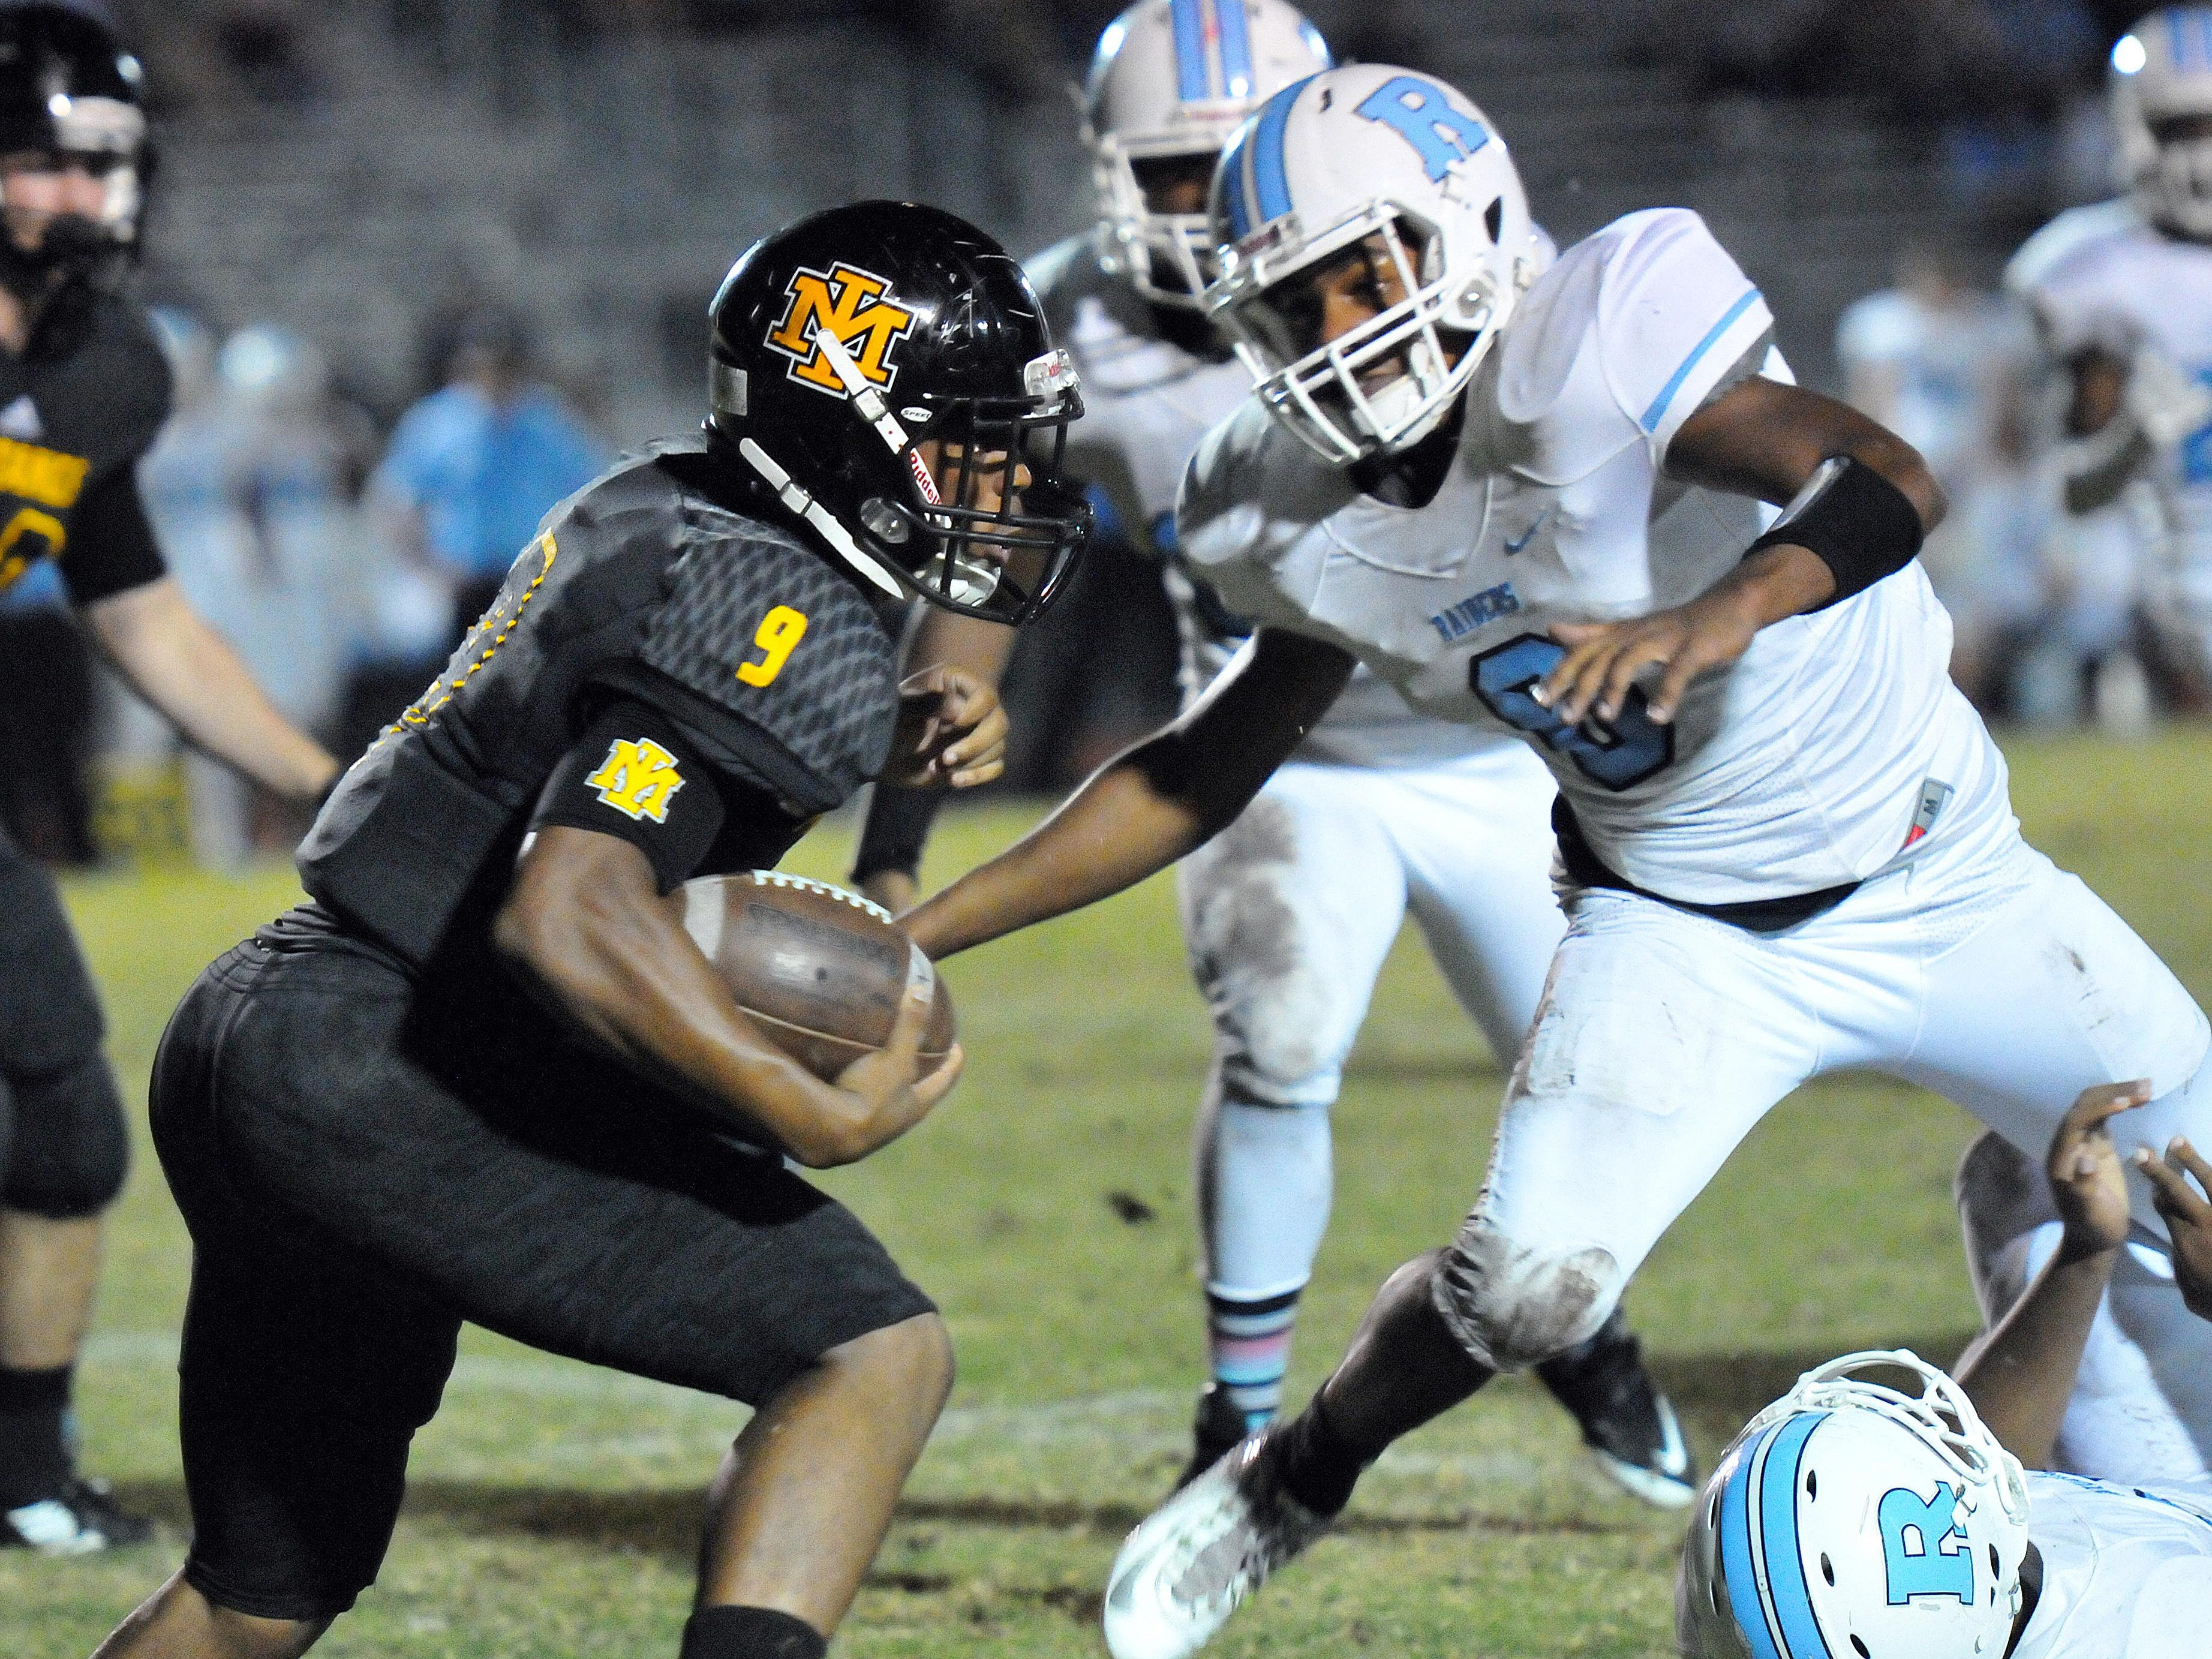 Merritt Island's Taquaan Pratt (9) finds some daylight past Rockledge High defenders during Friday night's game held at Mustang Stadium.